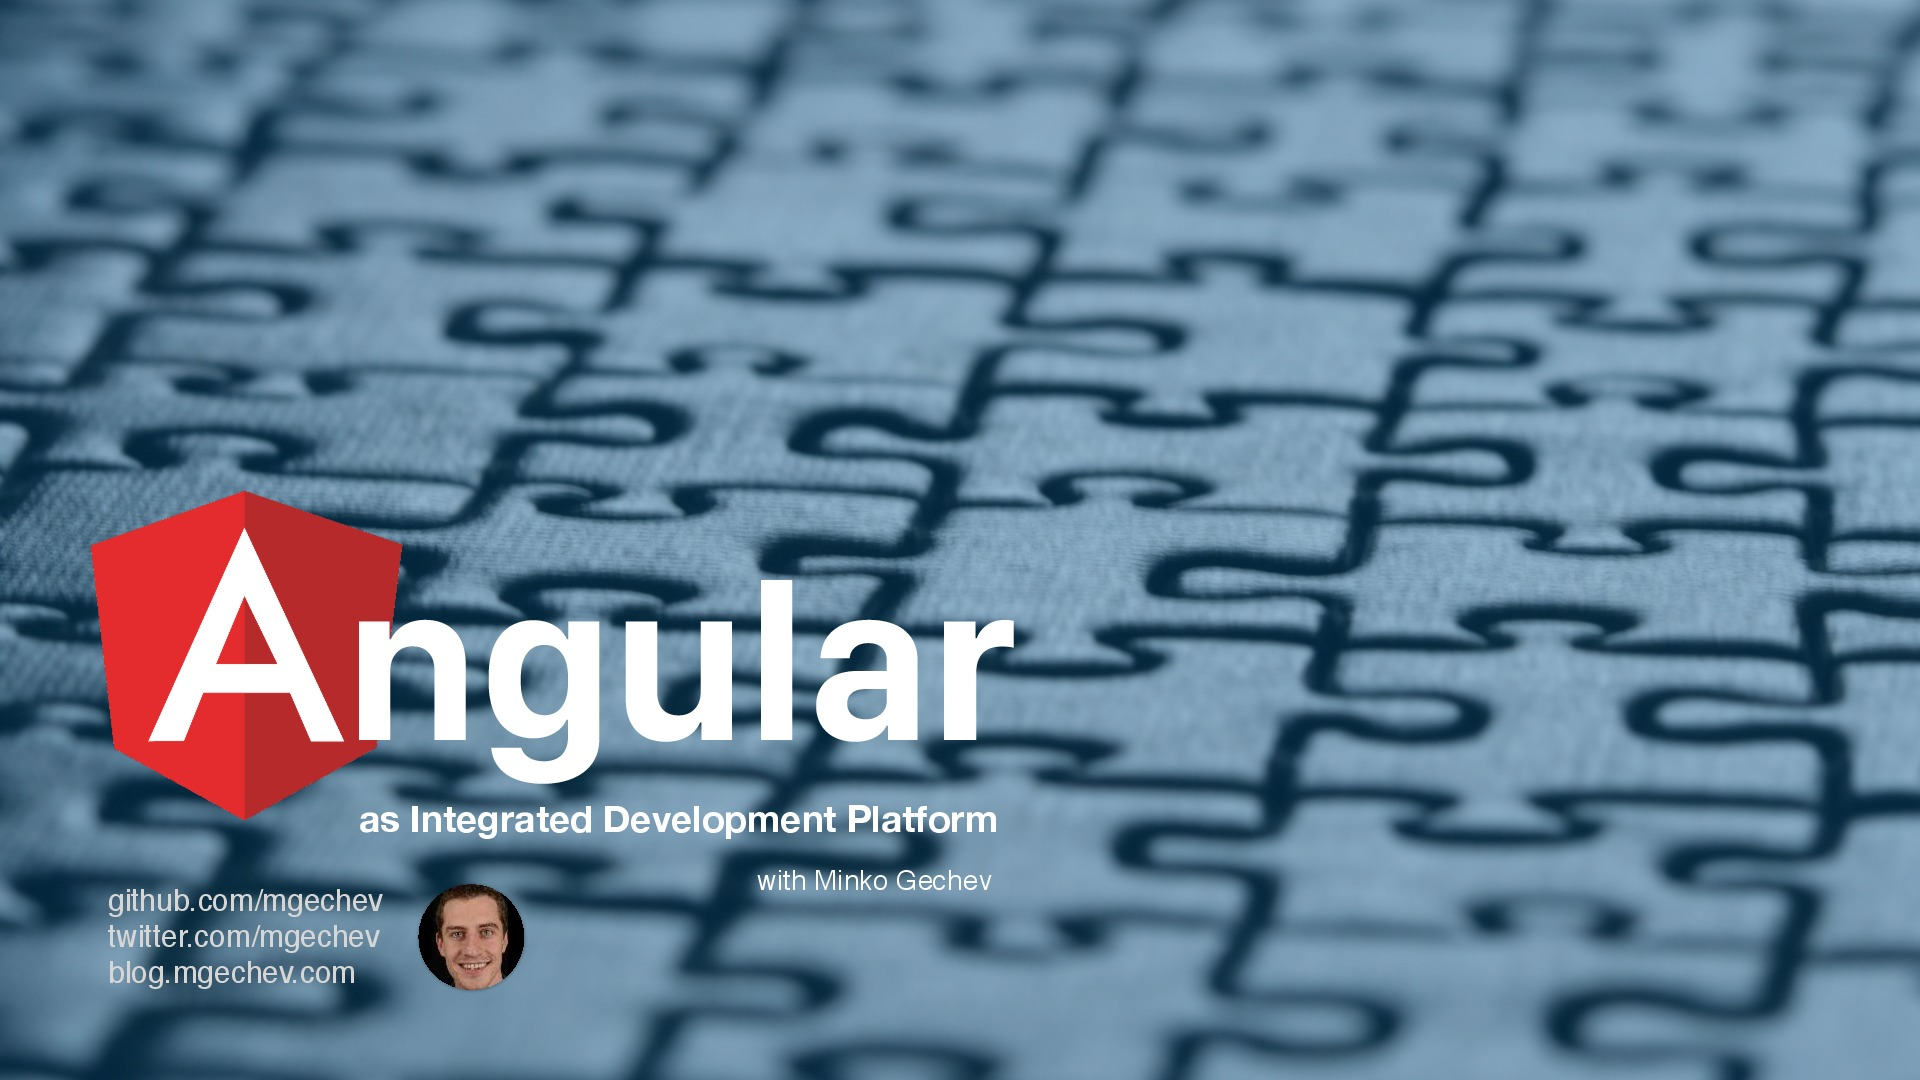 Angular as Integrated Development Platform